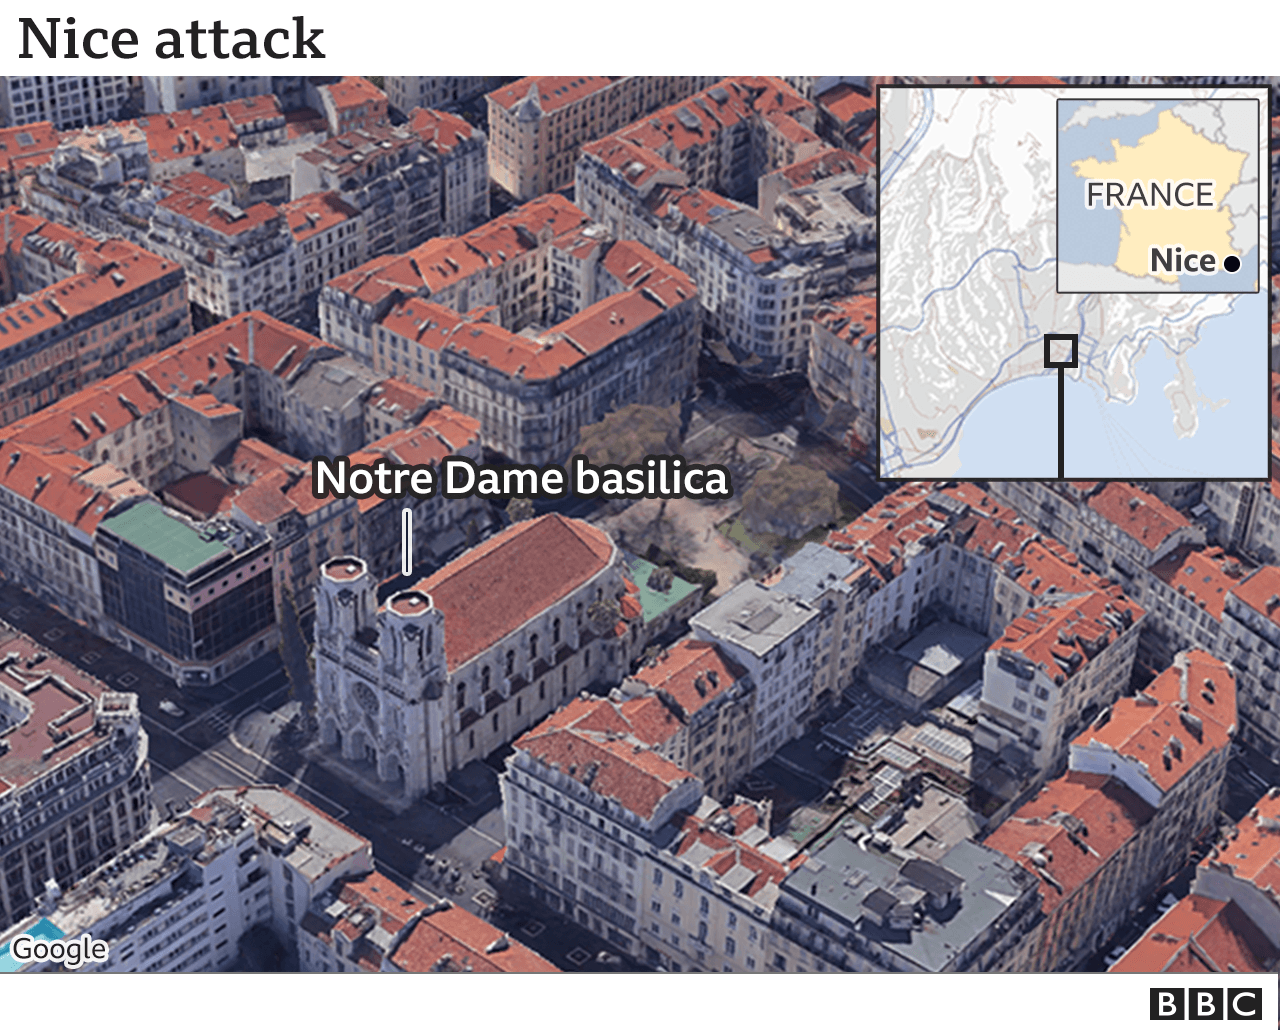 Map showing Notre Dame basilica